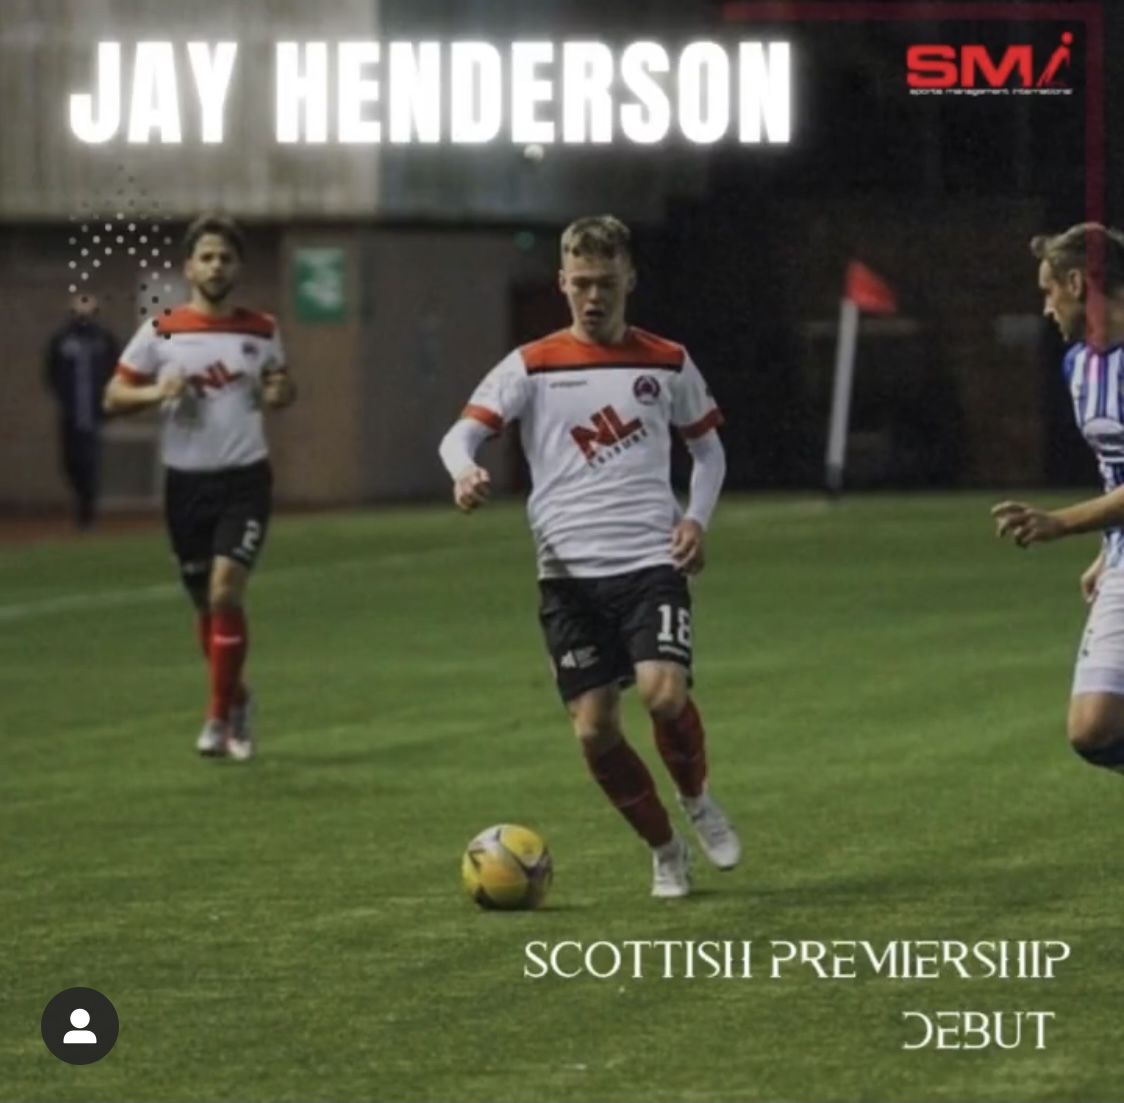 Jay Henderson makes his SPFL debut